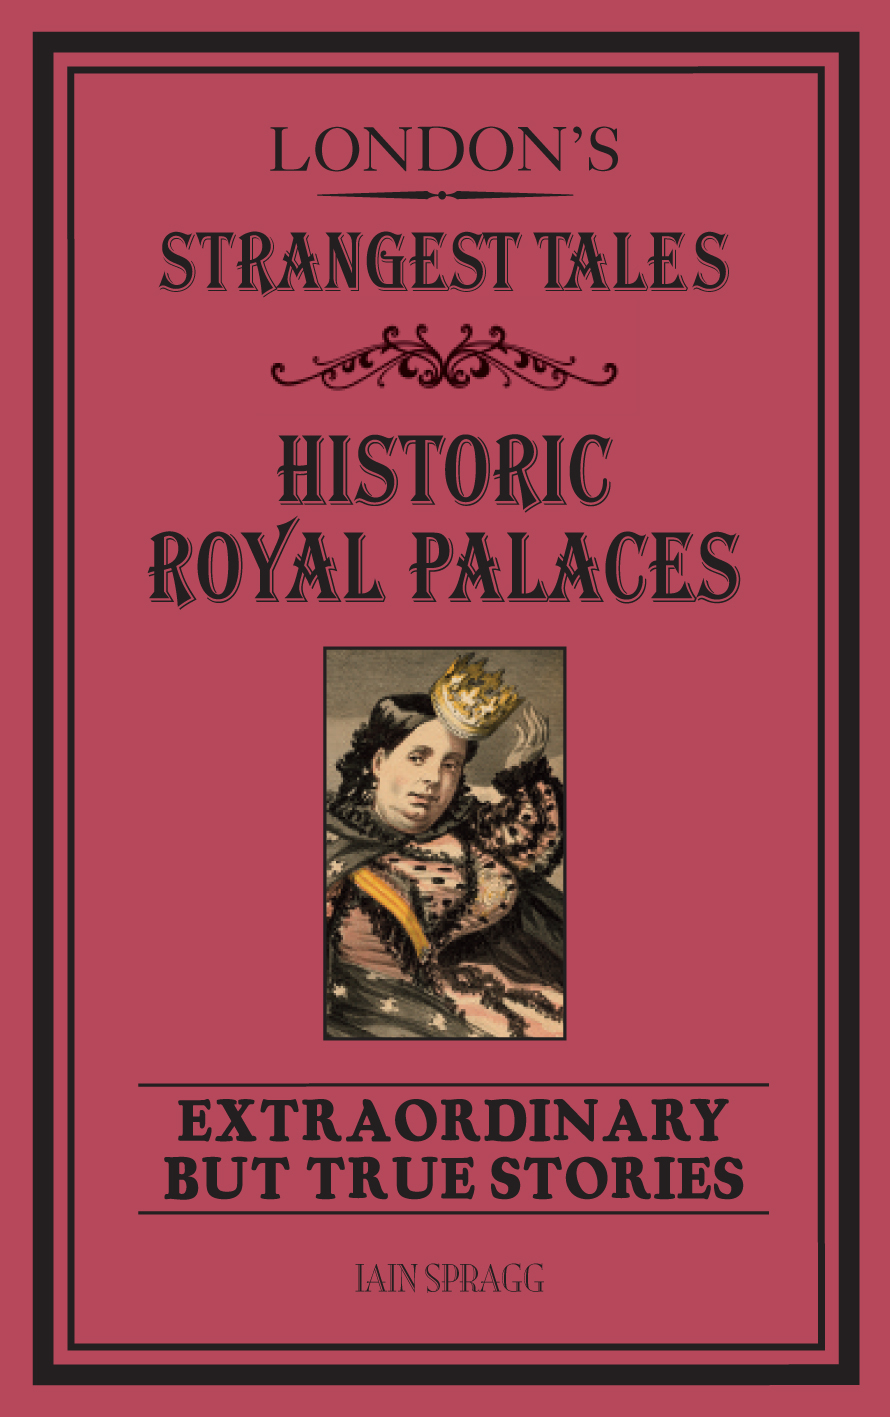 London's Strangest Tales: Historic Royal Palaces